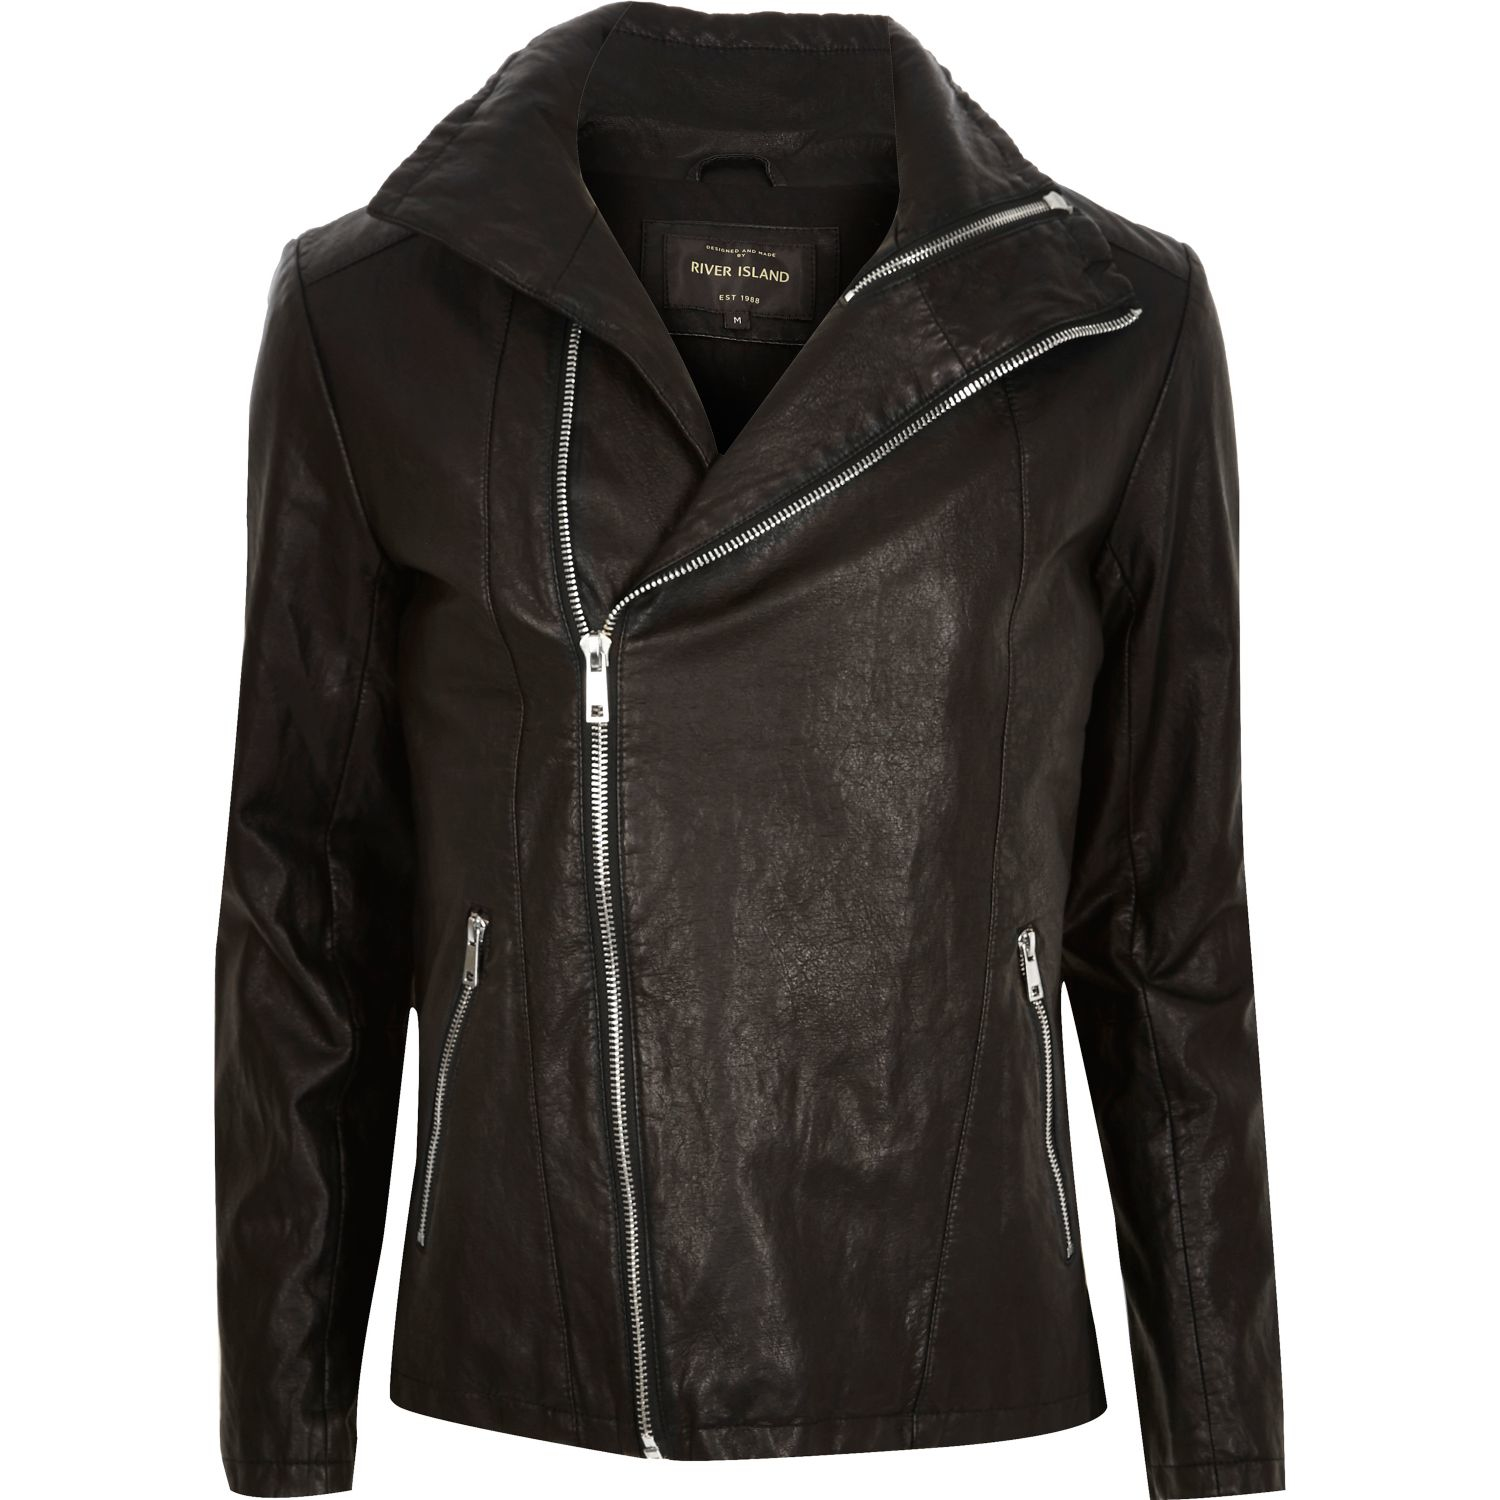 River island mens leather jacket